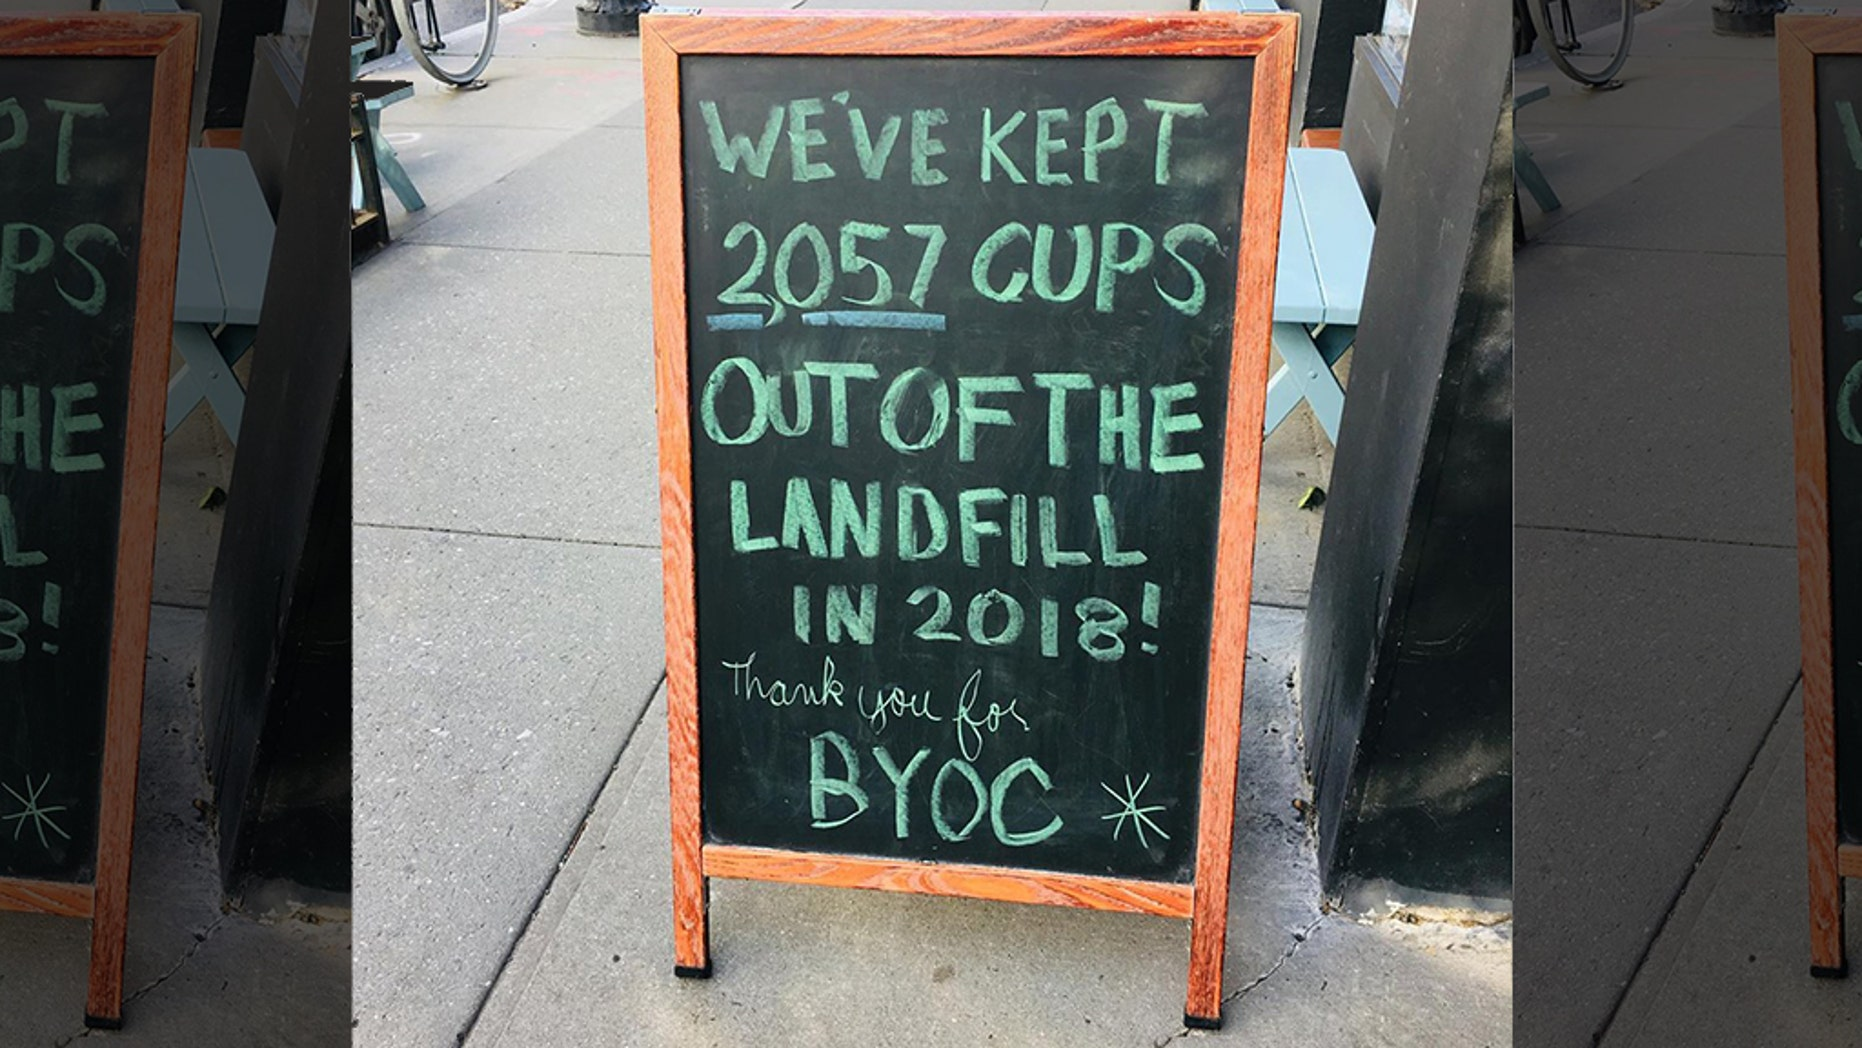 The Sanitation Department fined a coffee shop $300 for a sign that says how many cups they've kept out of the landfill.